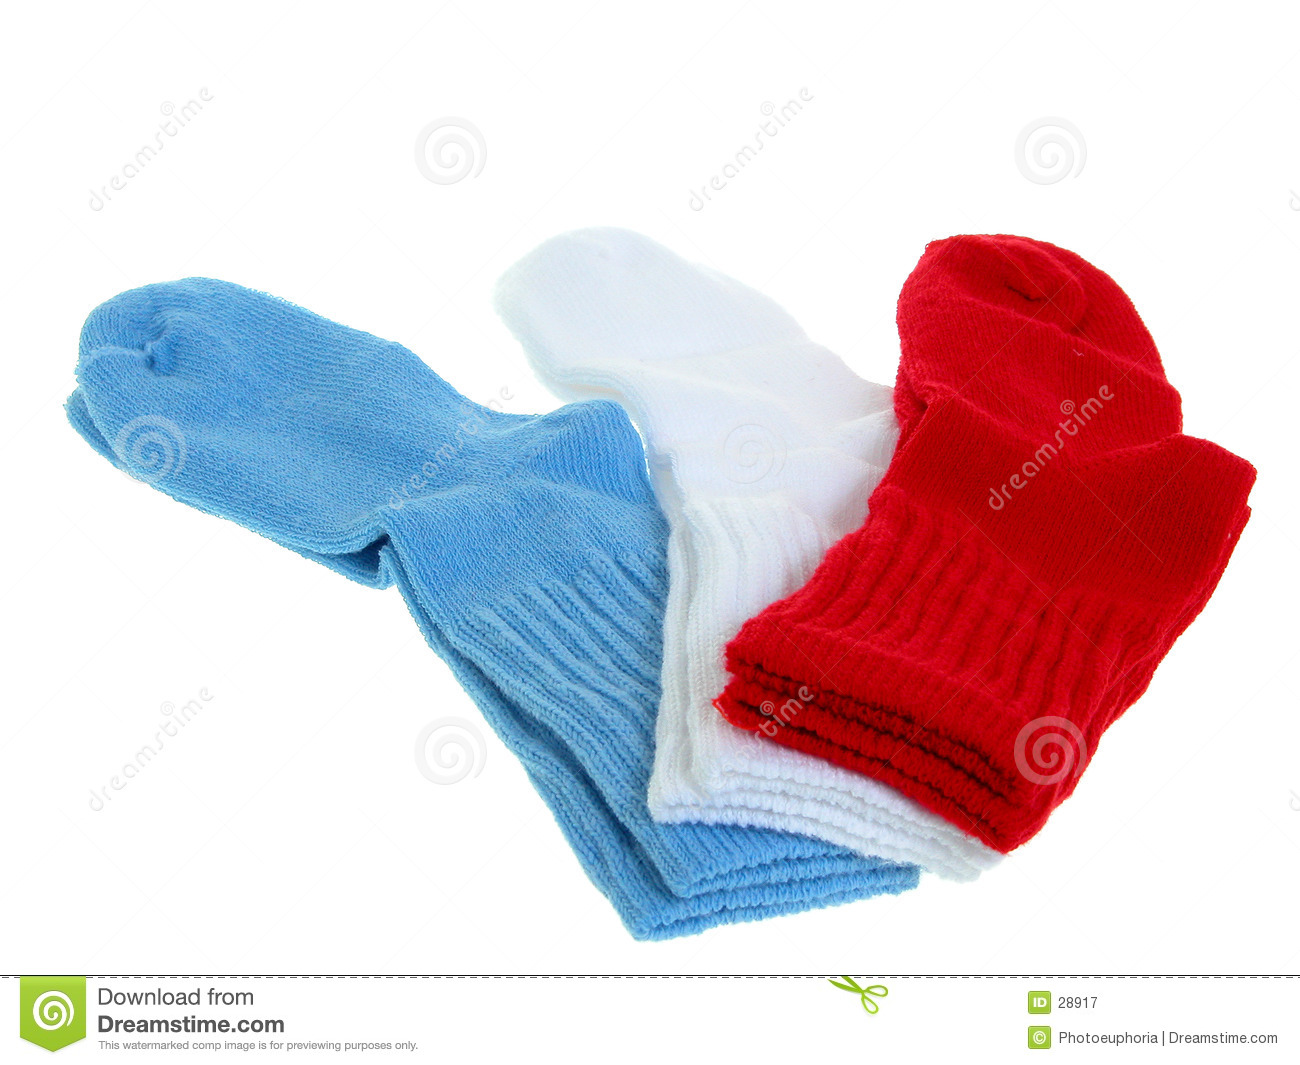 Fashion: Toddler Socks